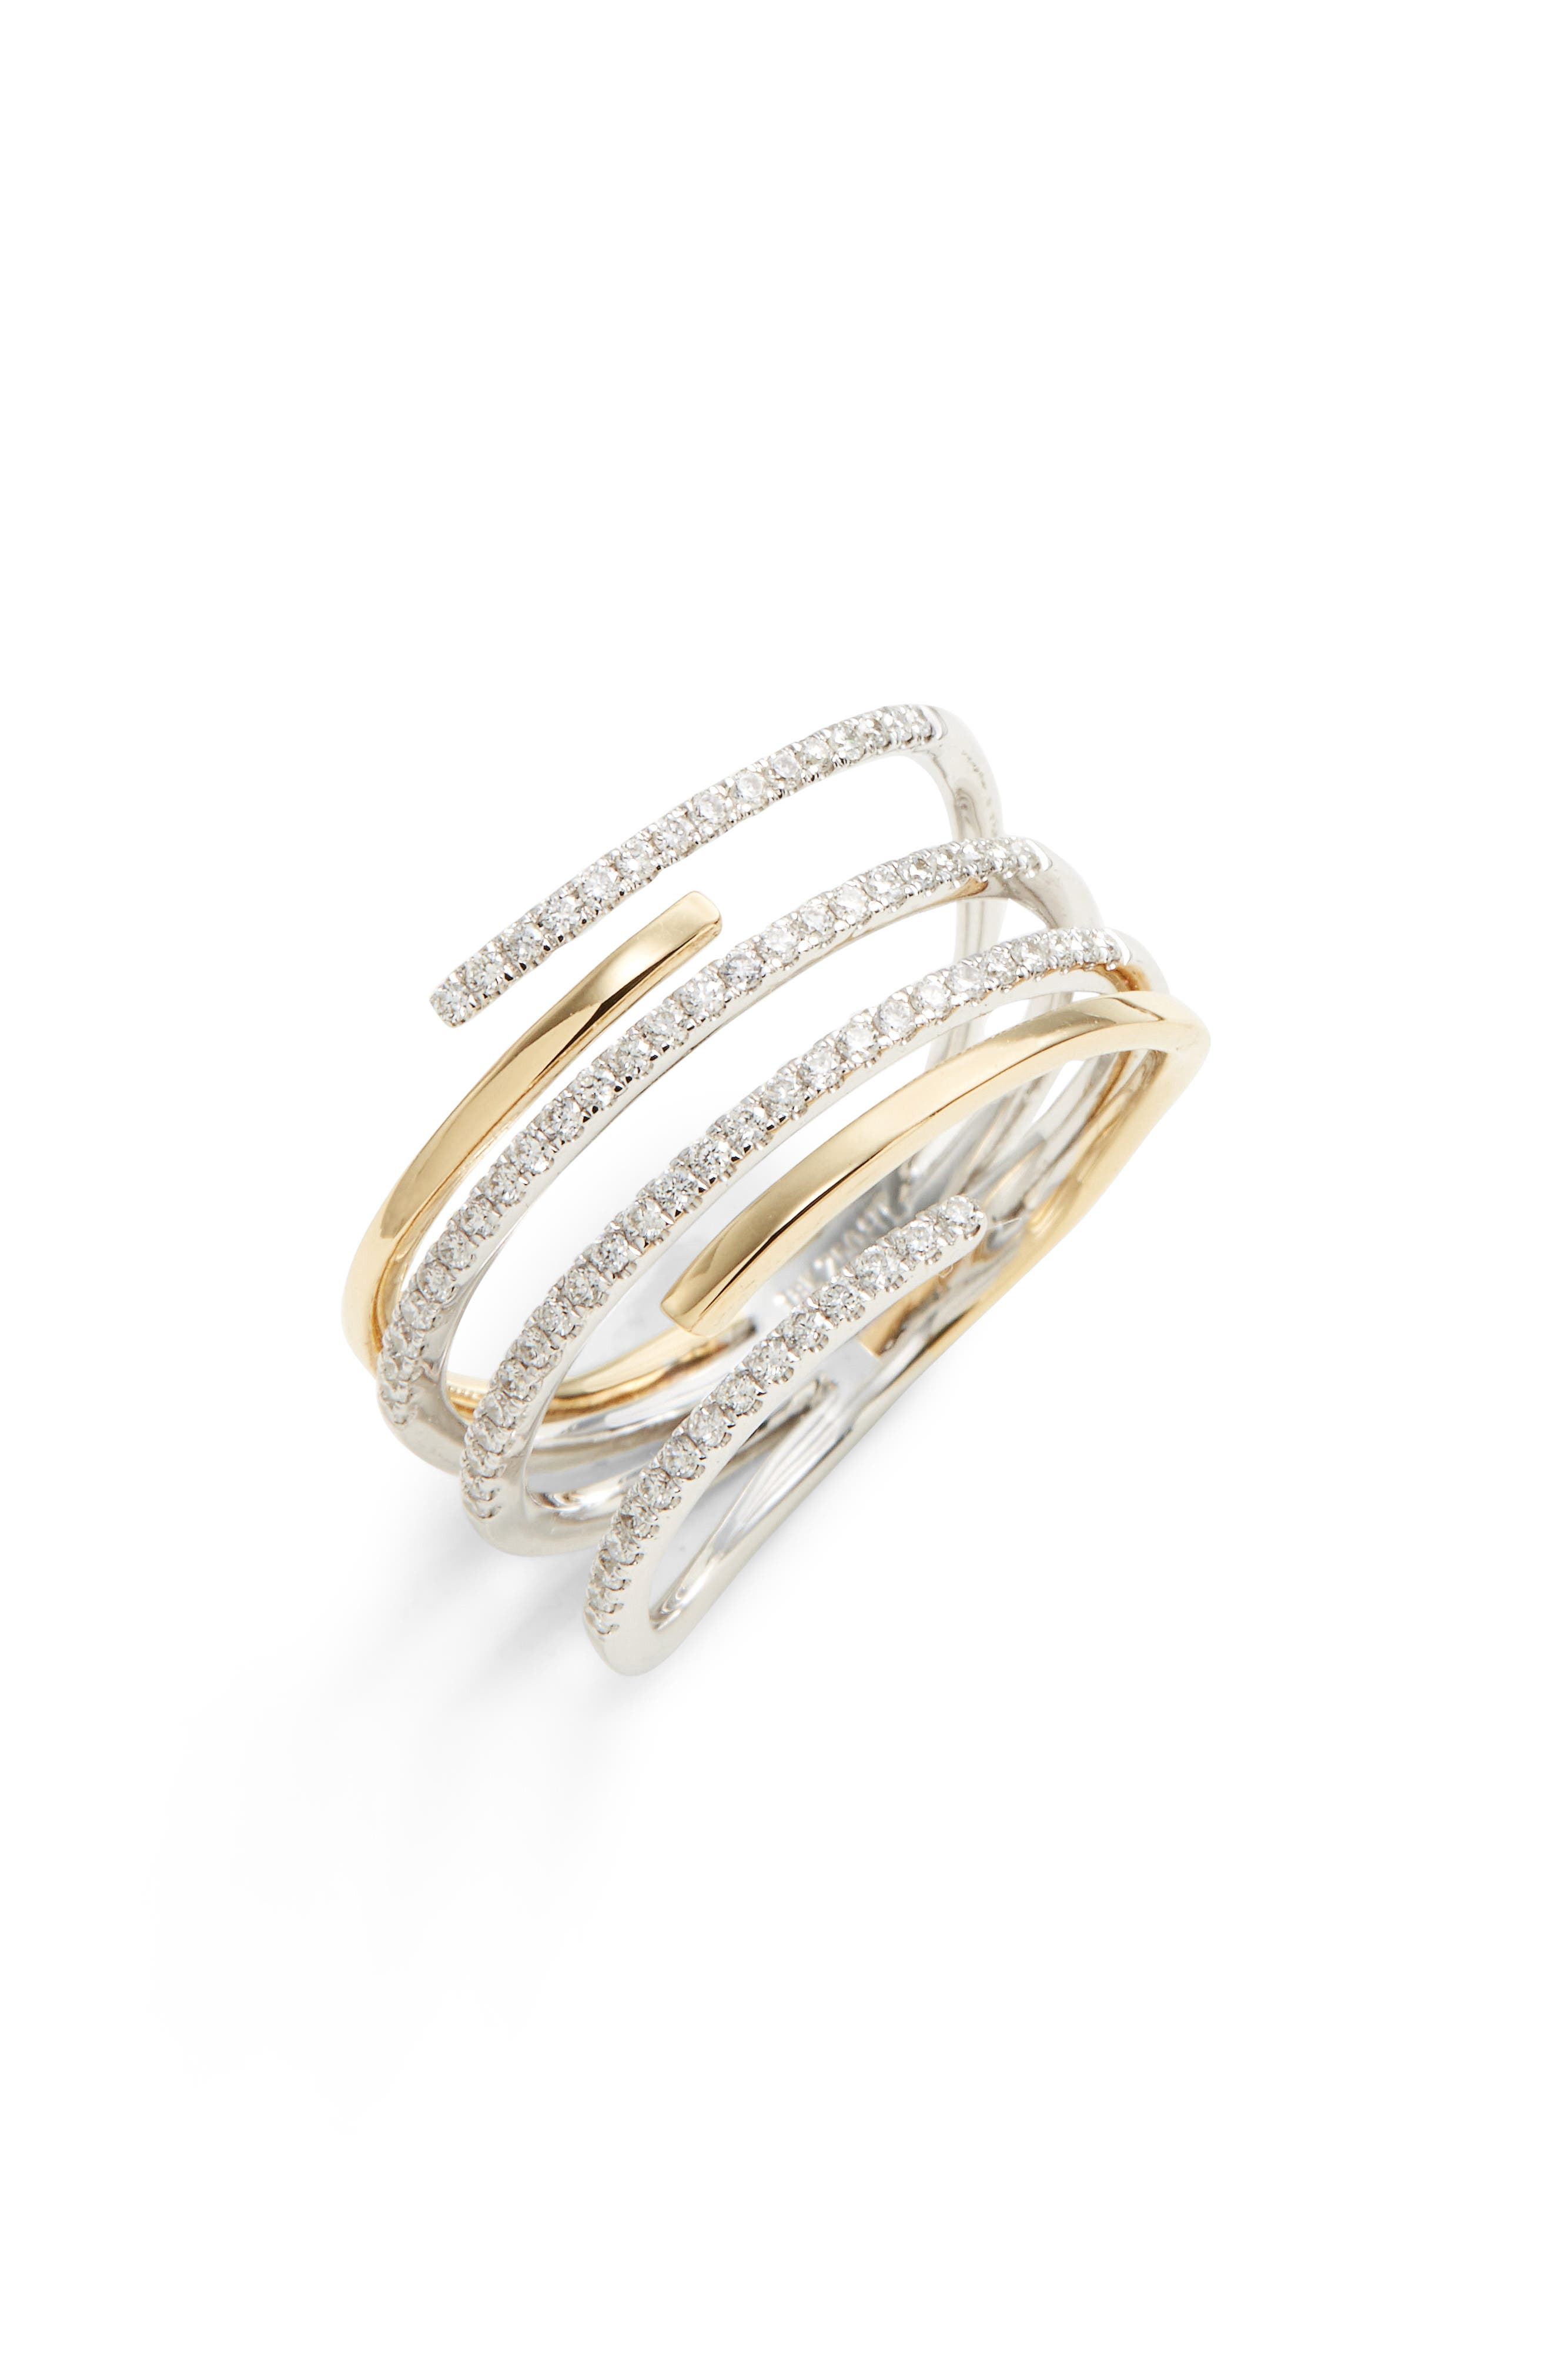 BONY LEVY Openwork Diamond Ring, Main, color, YELLOW GOLD/ WHITE GOLD